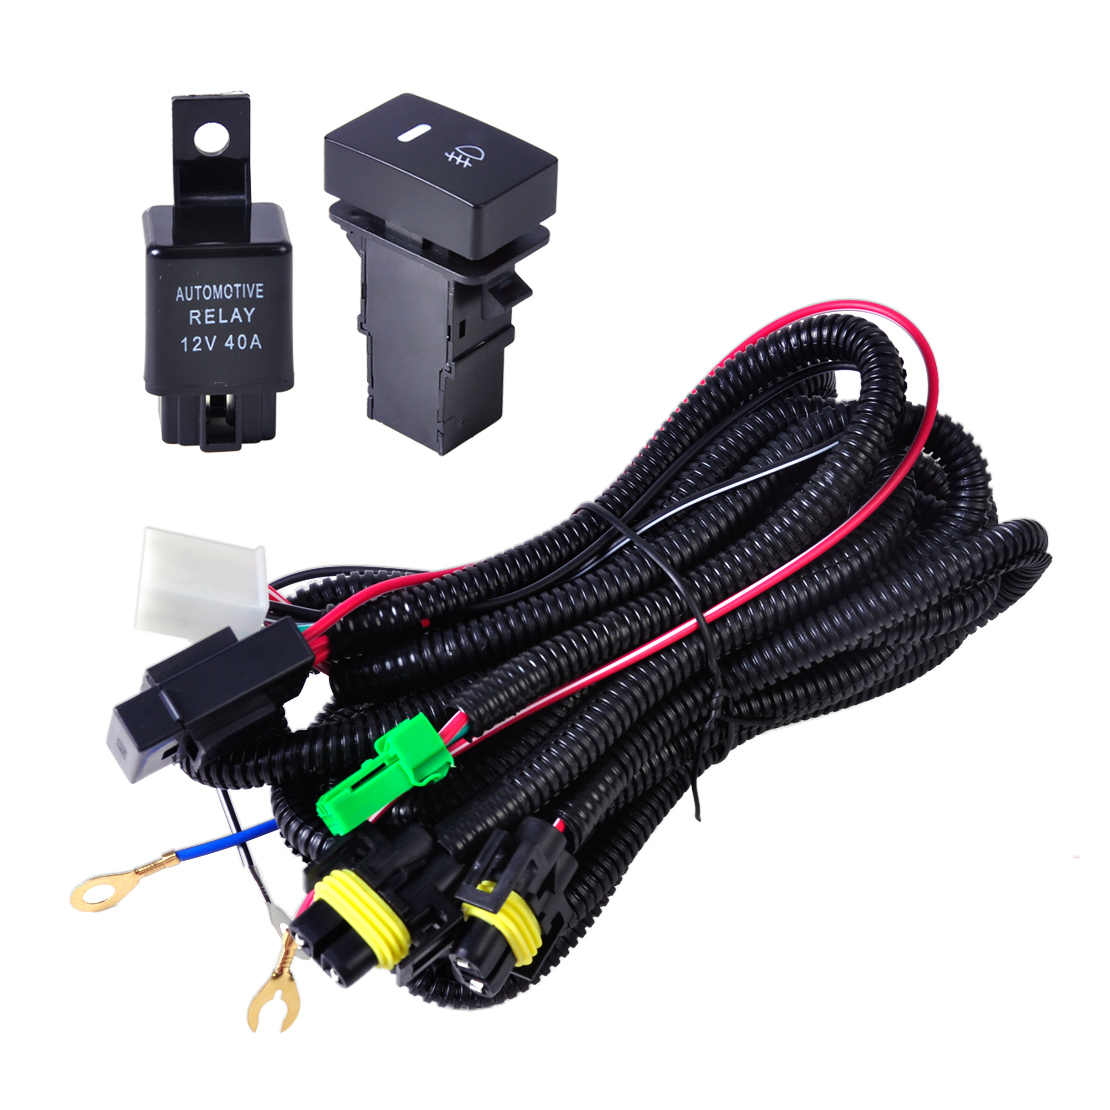 citall h11 fog light lamp wiring harness sockets wire switch with led indicators automotive relay  [ 1110 x 1110 Pixel ]